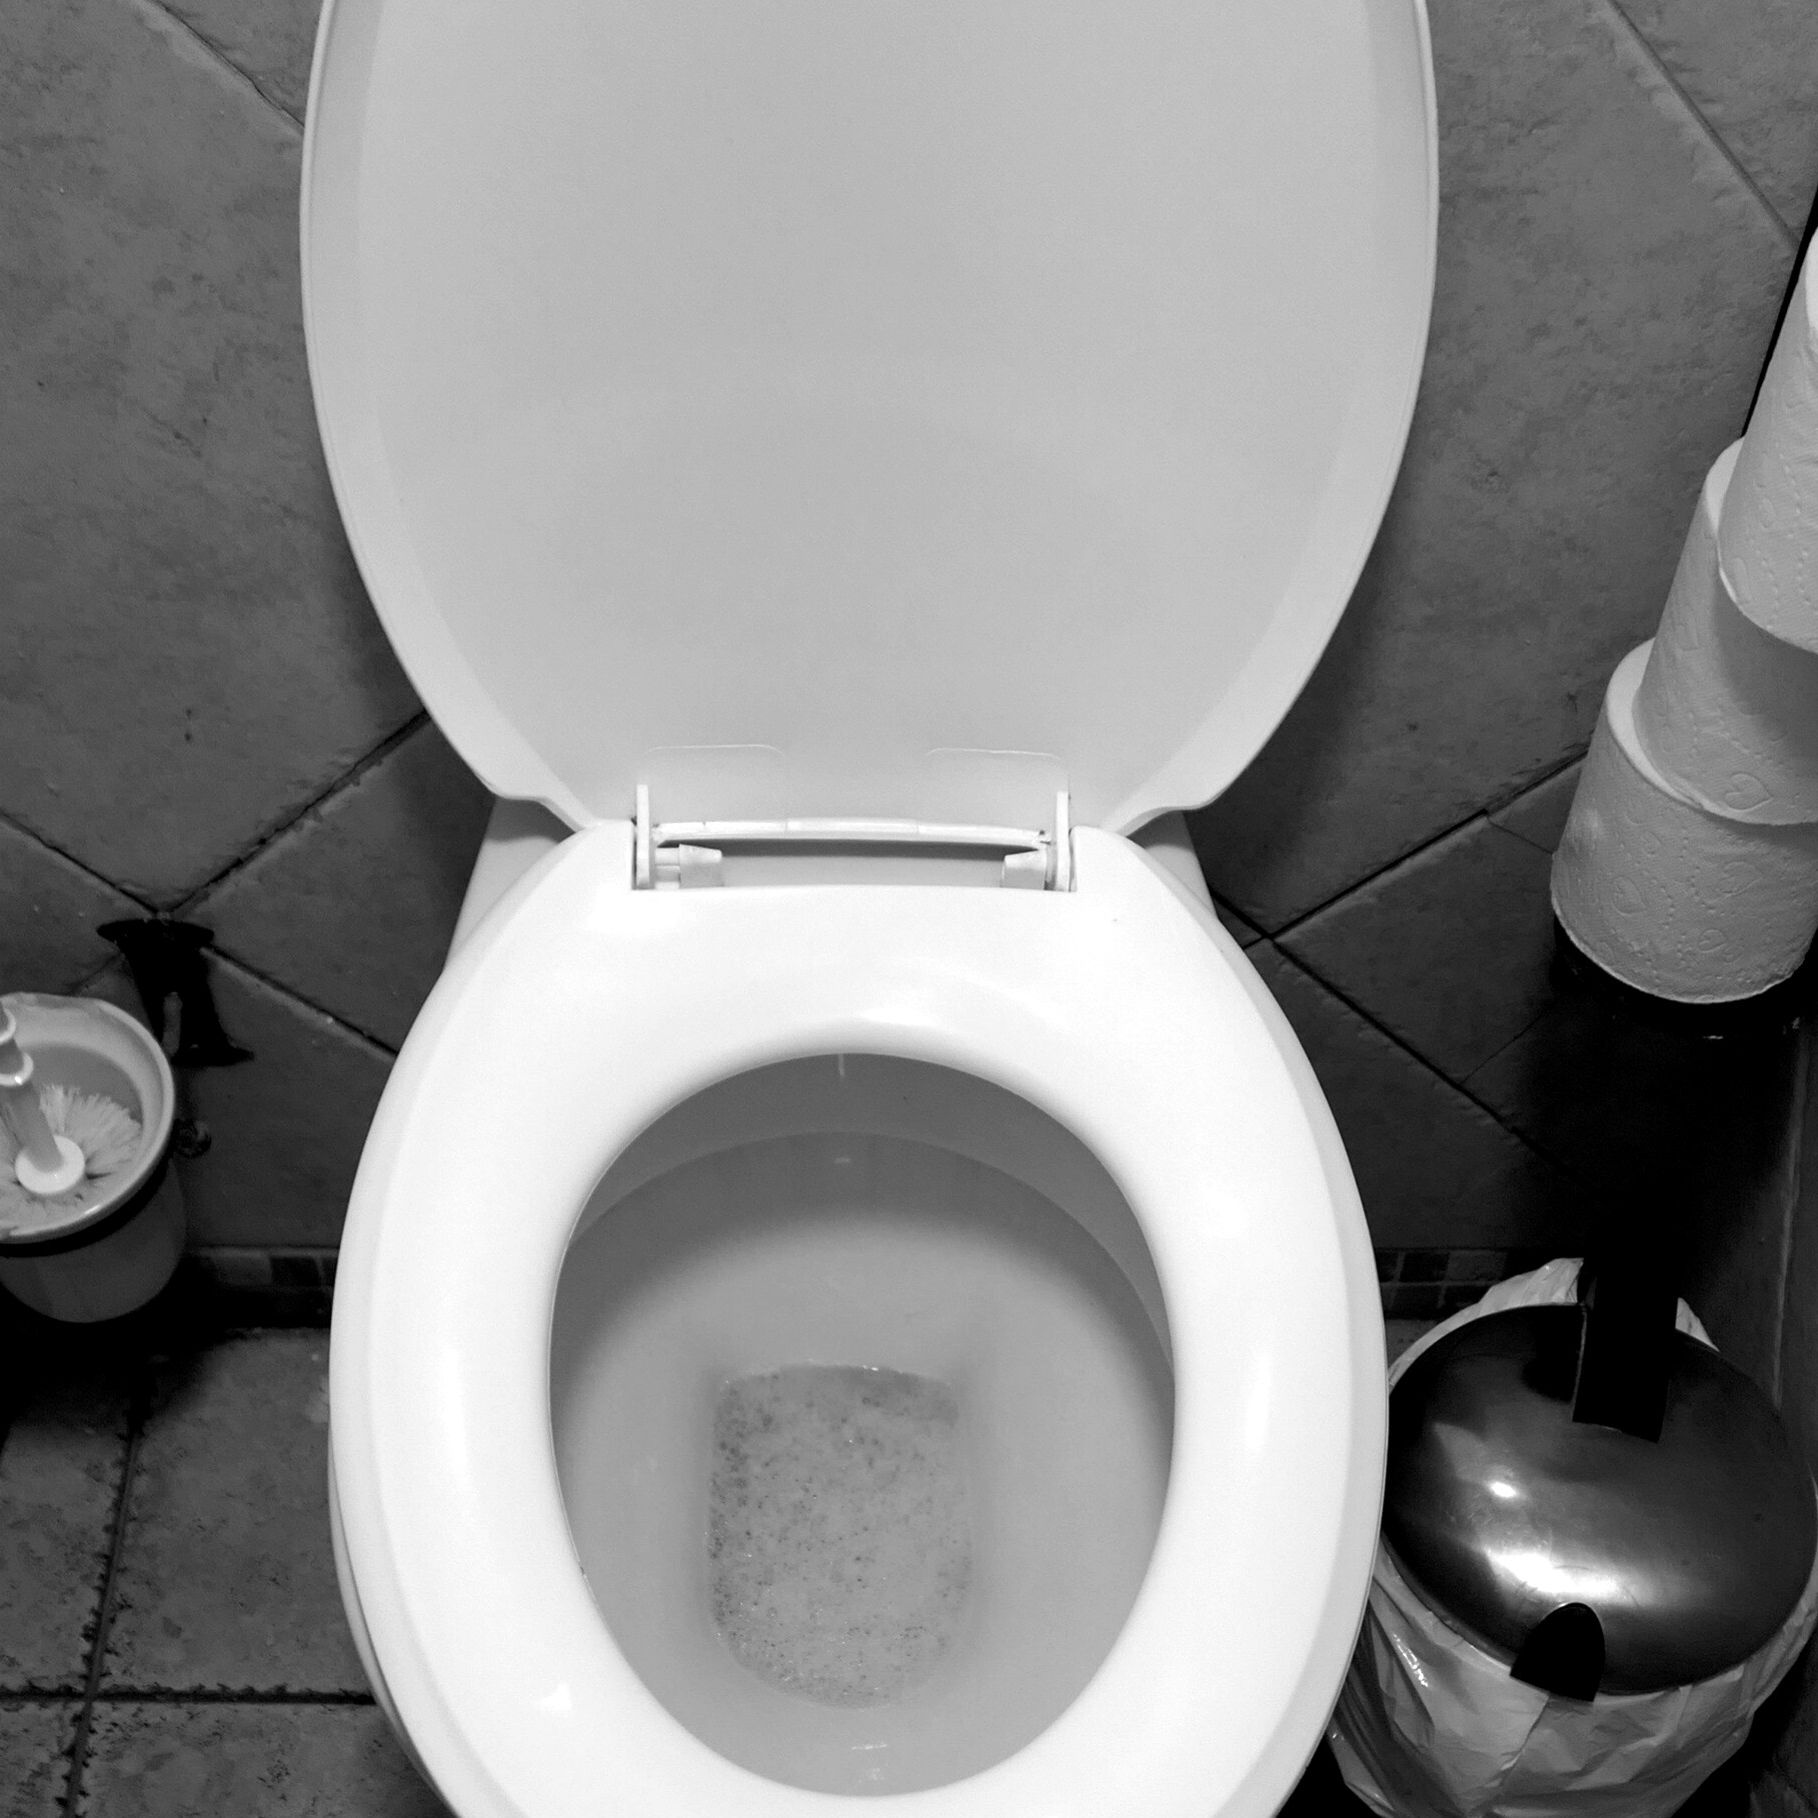 Astounding 10 Weird Toilet Cleaning Tips And Fixes Ibusinesslaw Wood Chair Design Ideas Ibusinesslaworg